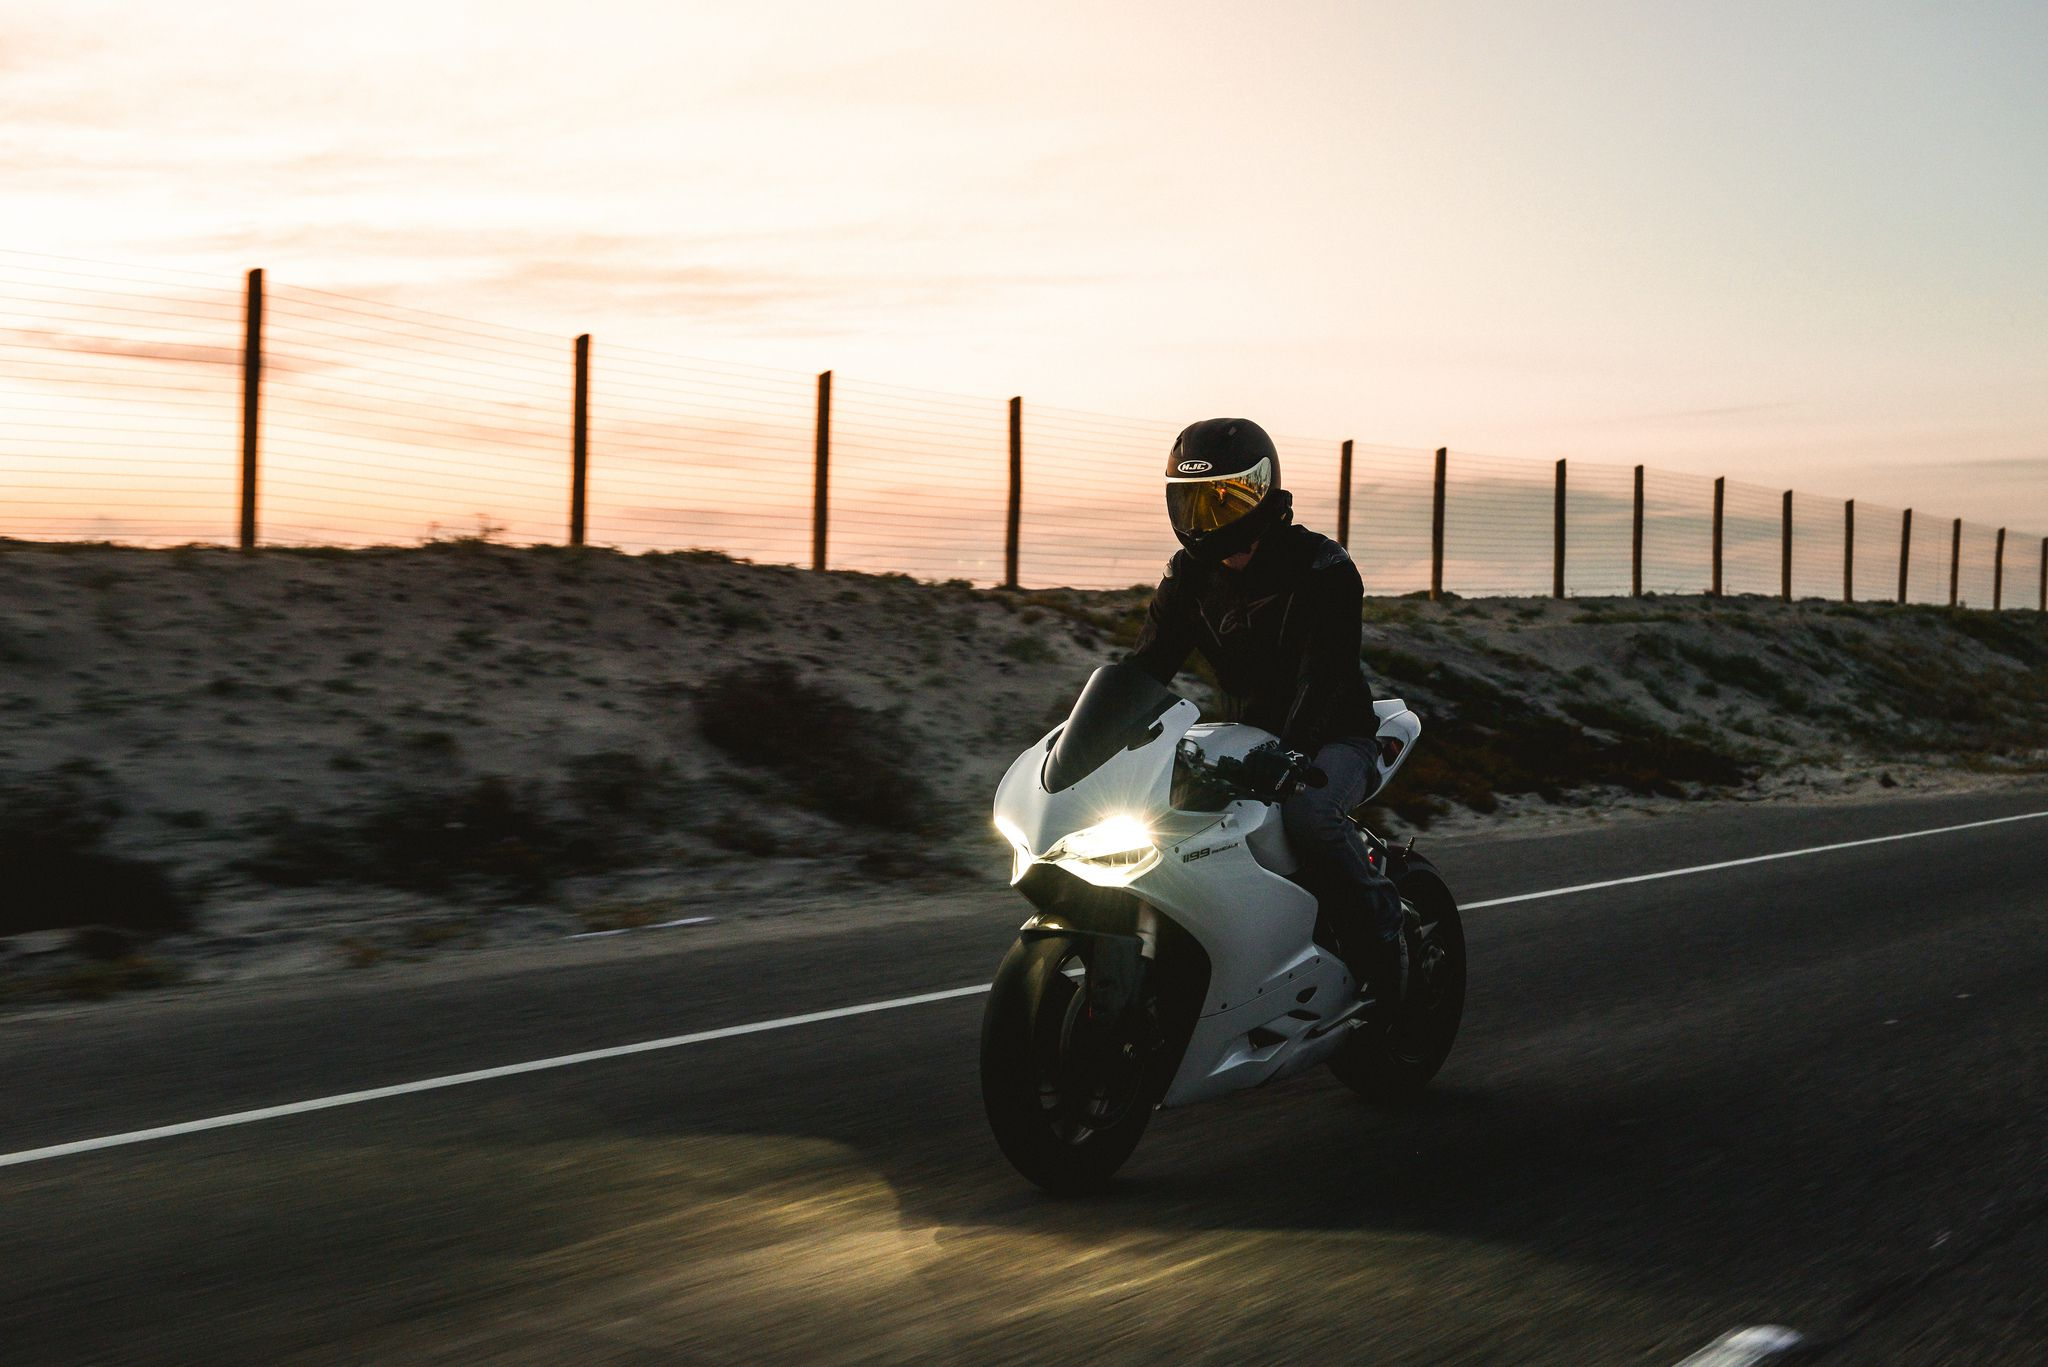 Ducati 1199 Panigale - at speed